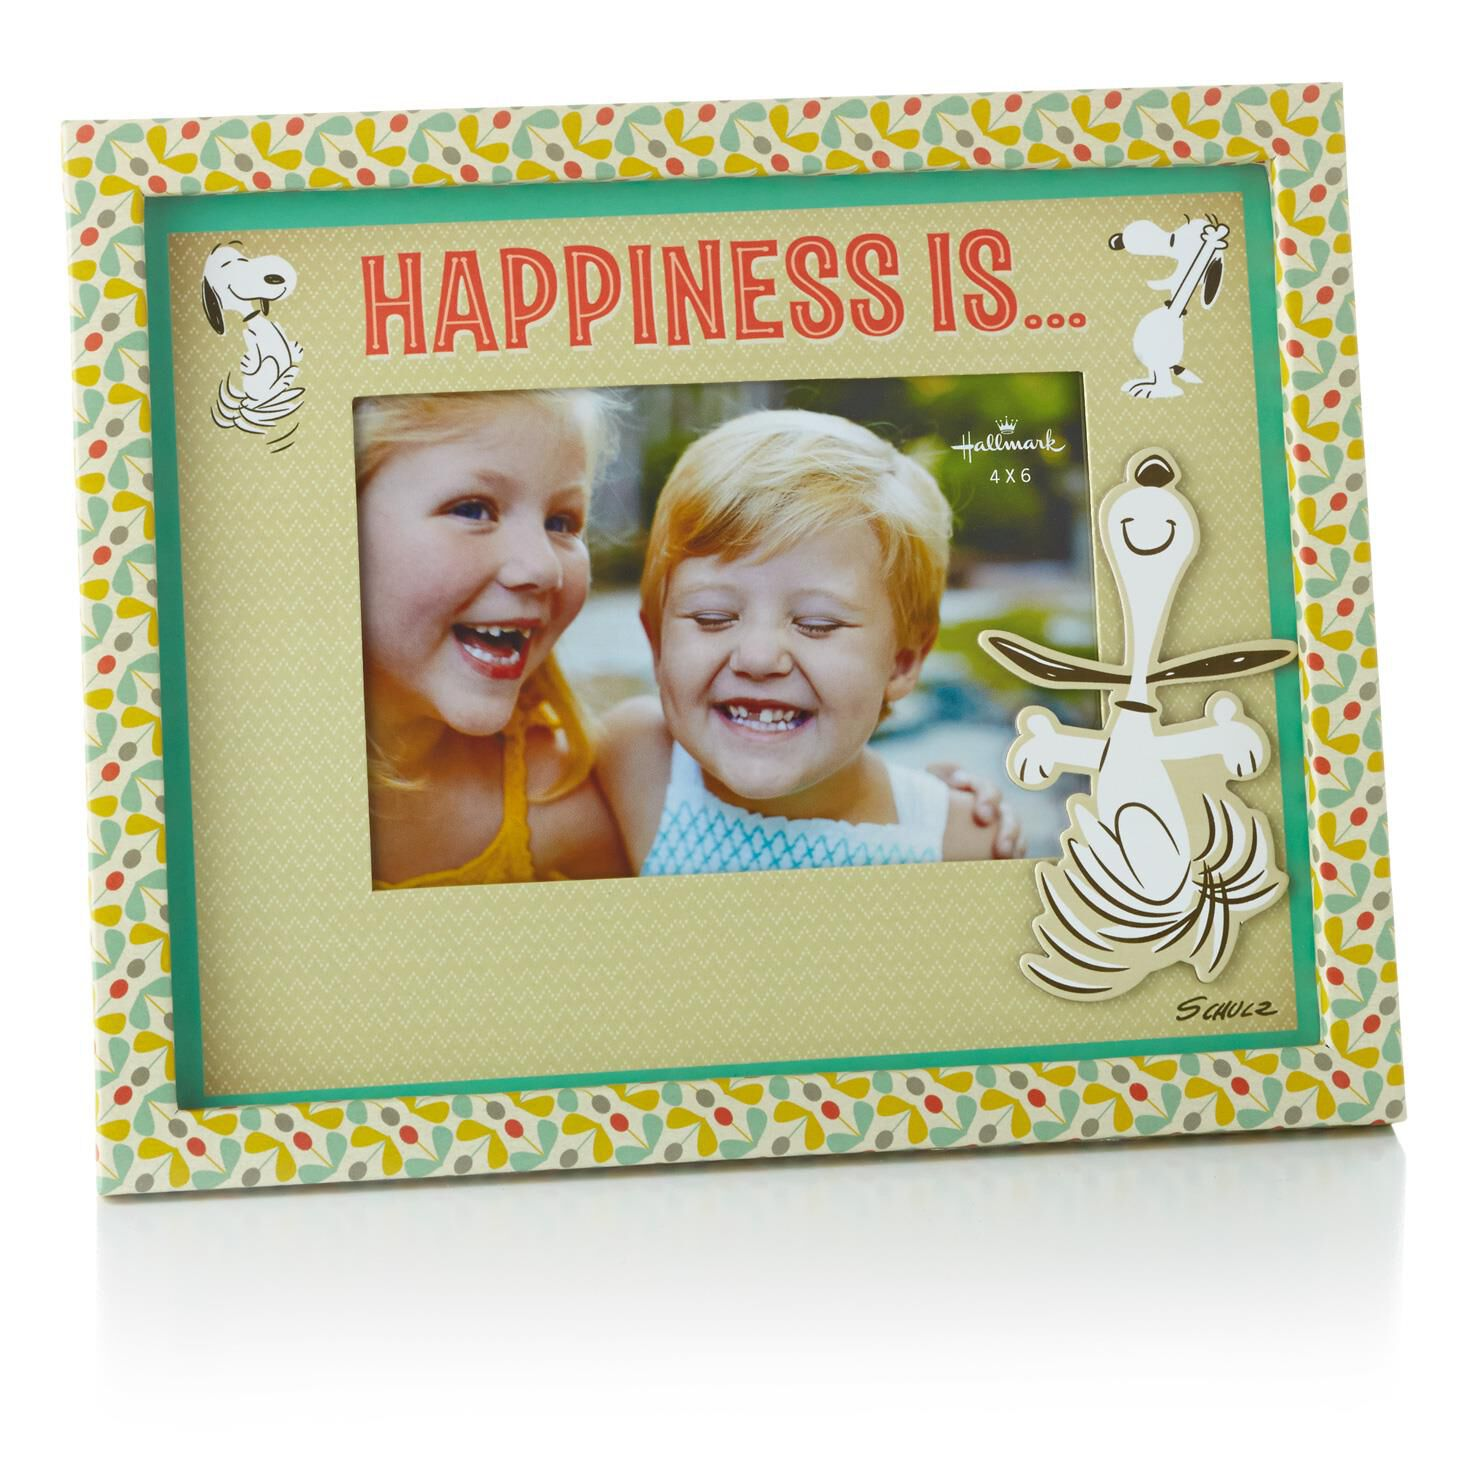 Happiness is picture frame 4x6 picture frames hallmark jeuxipadfo Choice Image